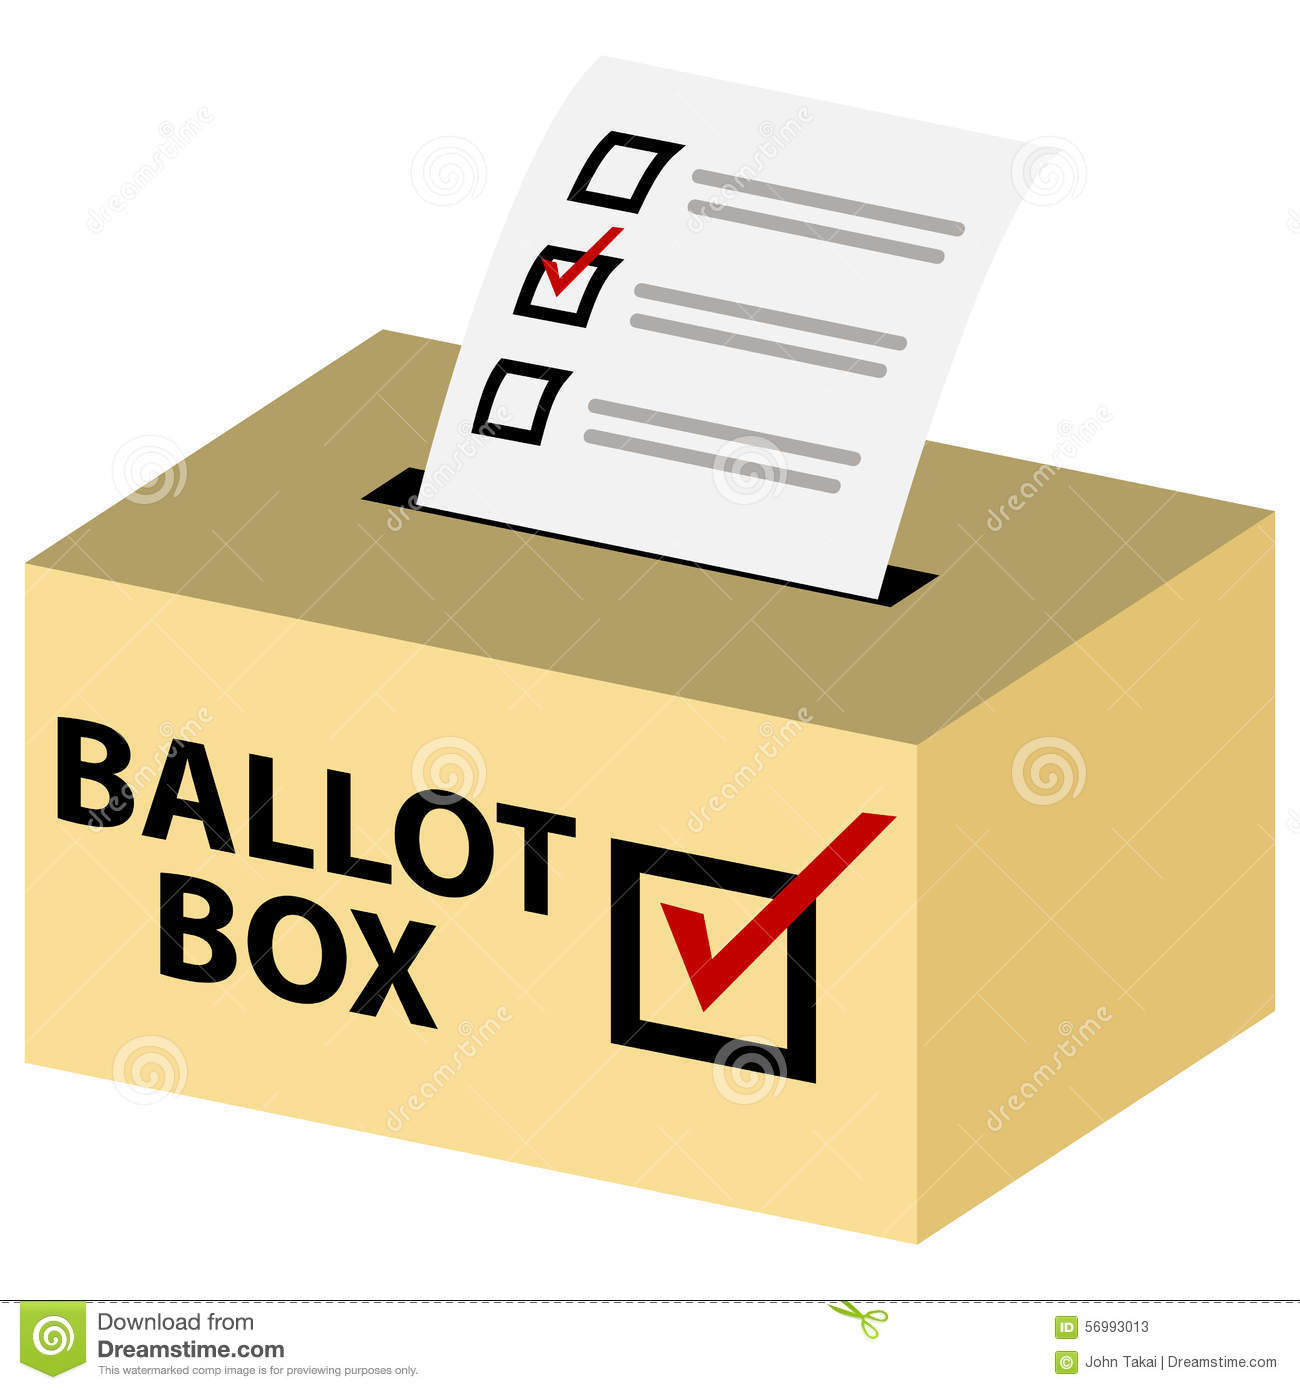 Very small voting box clipart.